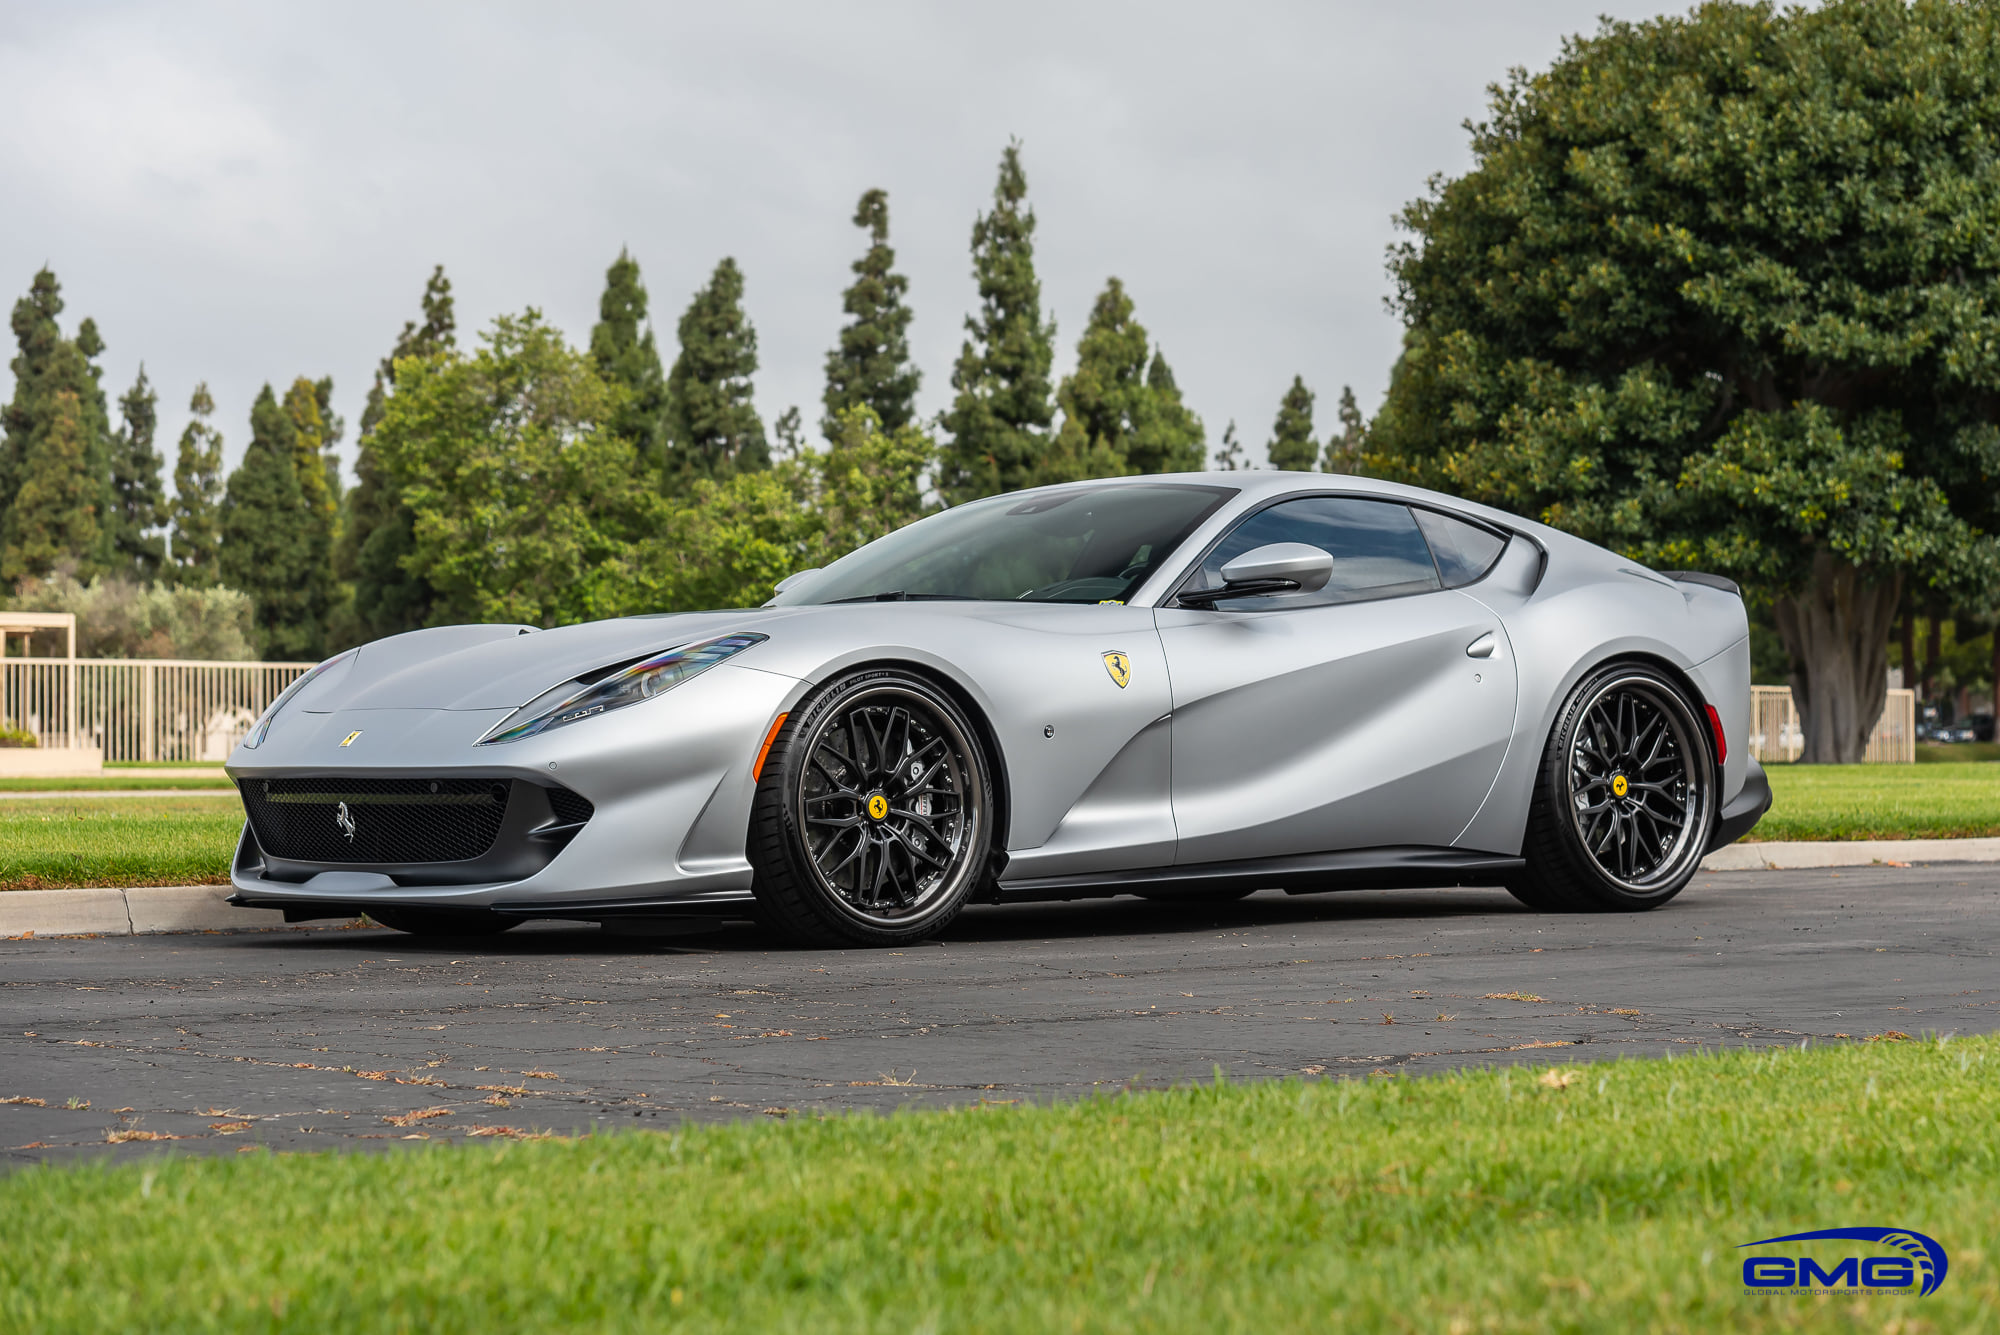 GMG Racing, a U.S.-based company specializing in tuning and servicing European supercars, has unveiled a brilliant custom Ferrari 812 Superfast put in a metallic grey body.